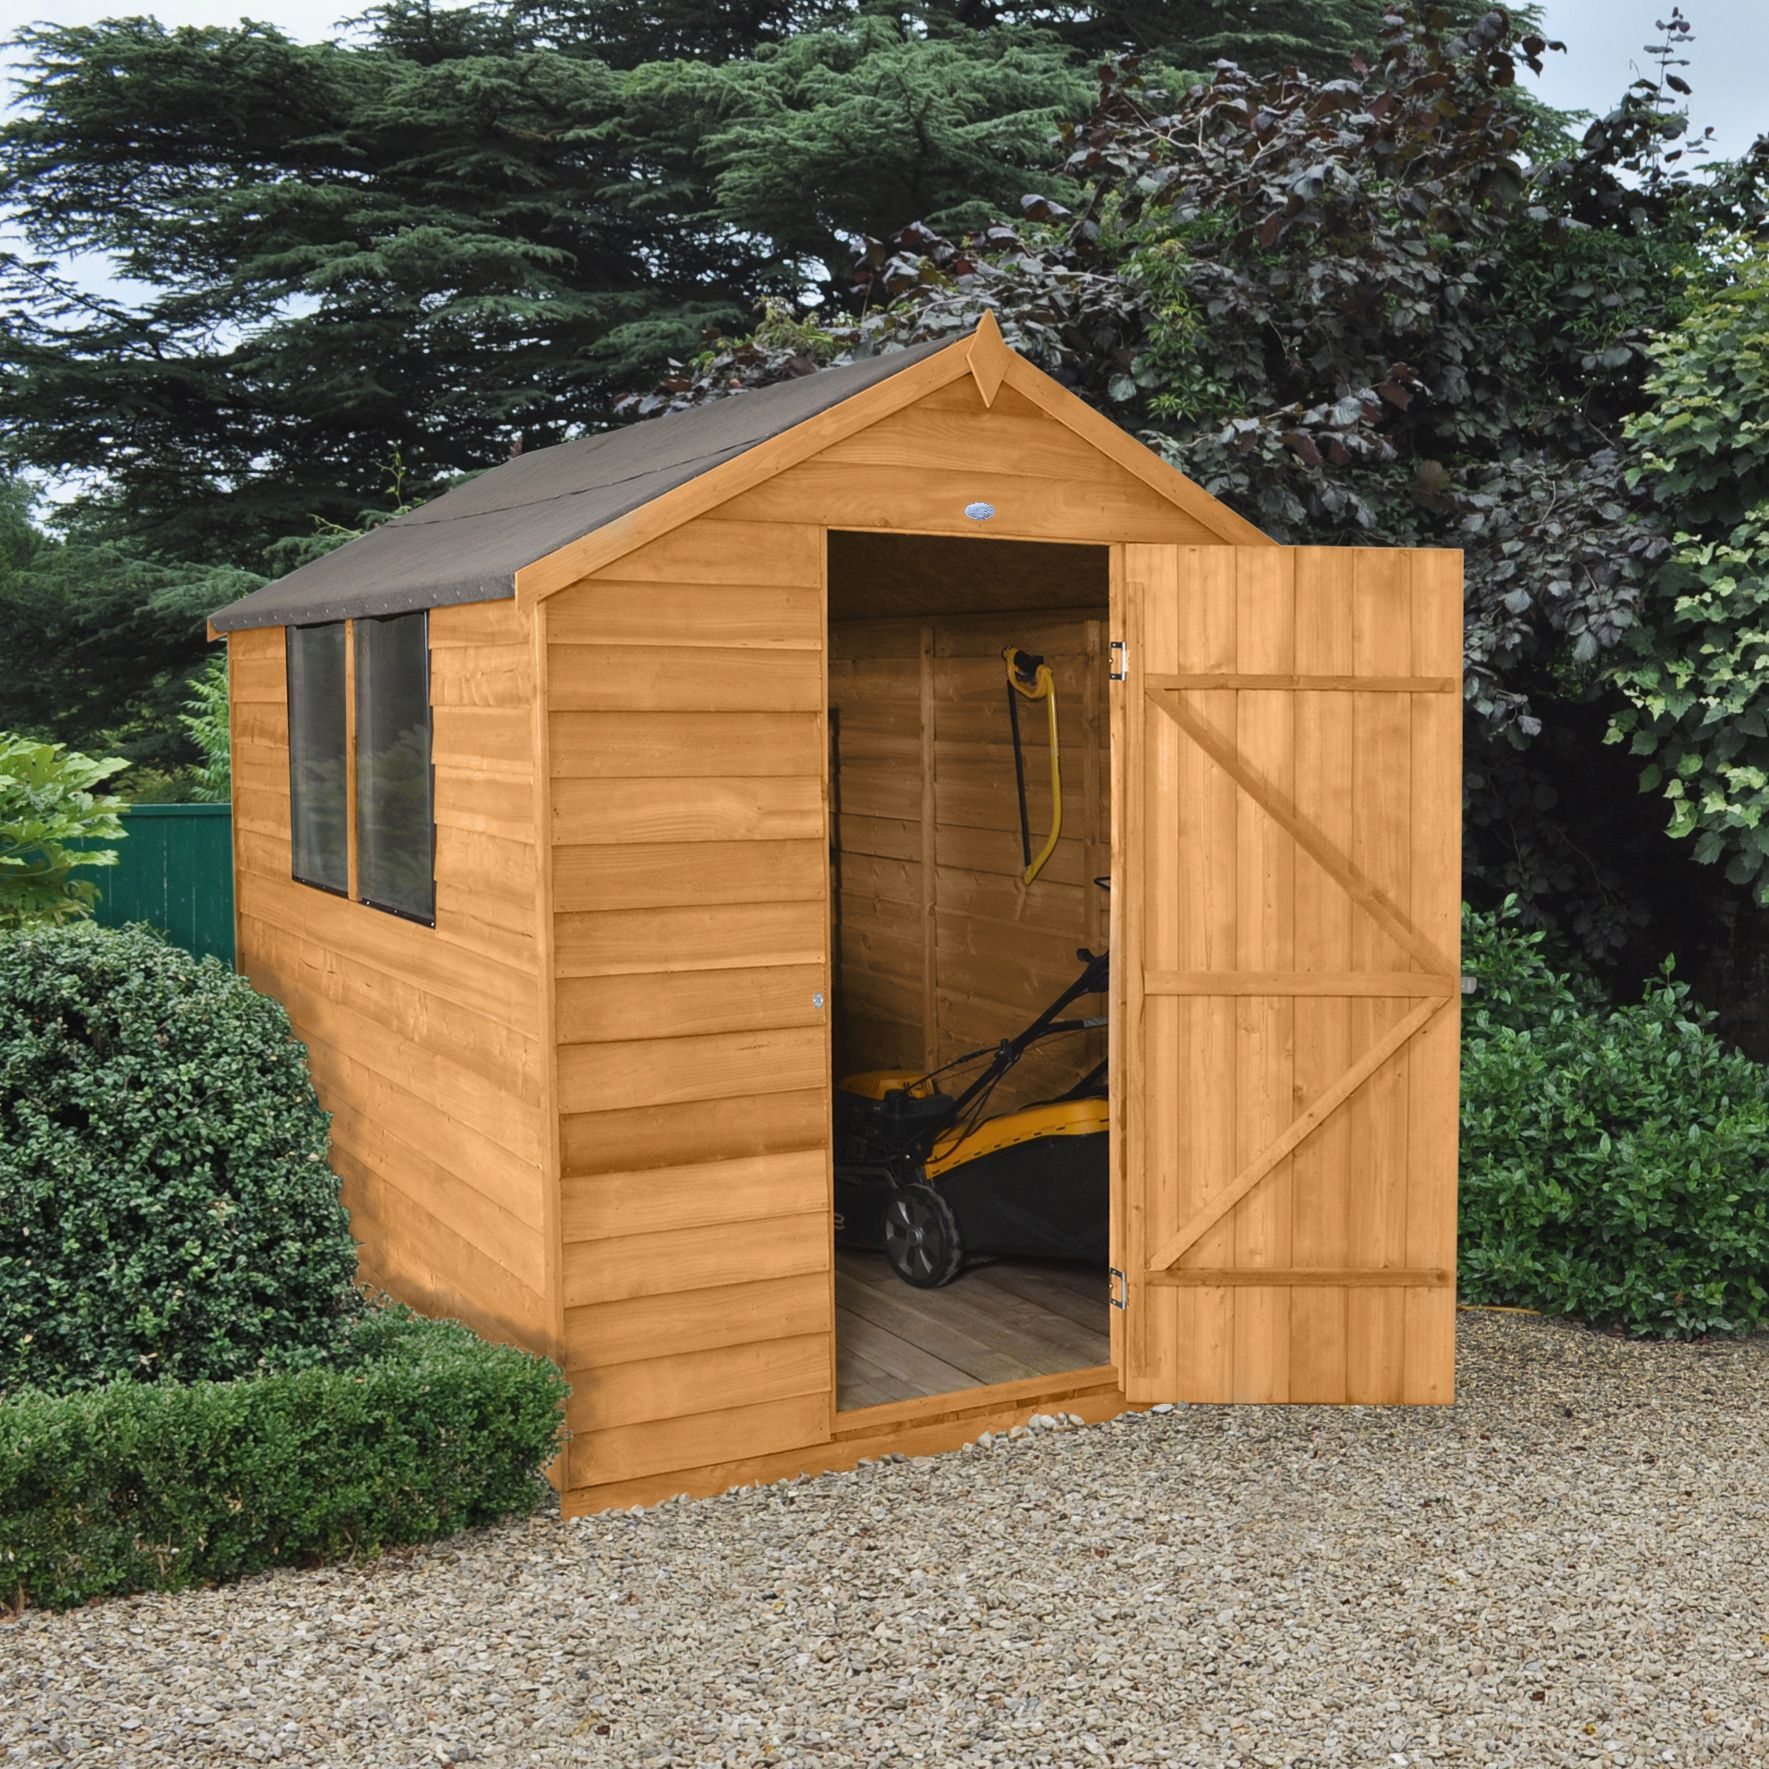 a sheds garden one by choose wooden en qubo to right casetta aquilani lli uncategorized f the how